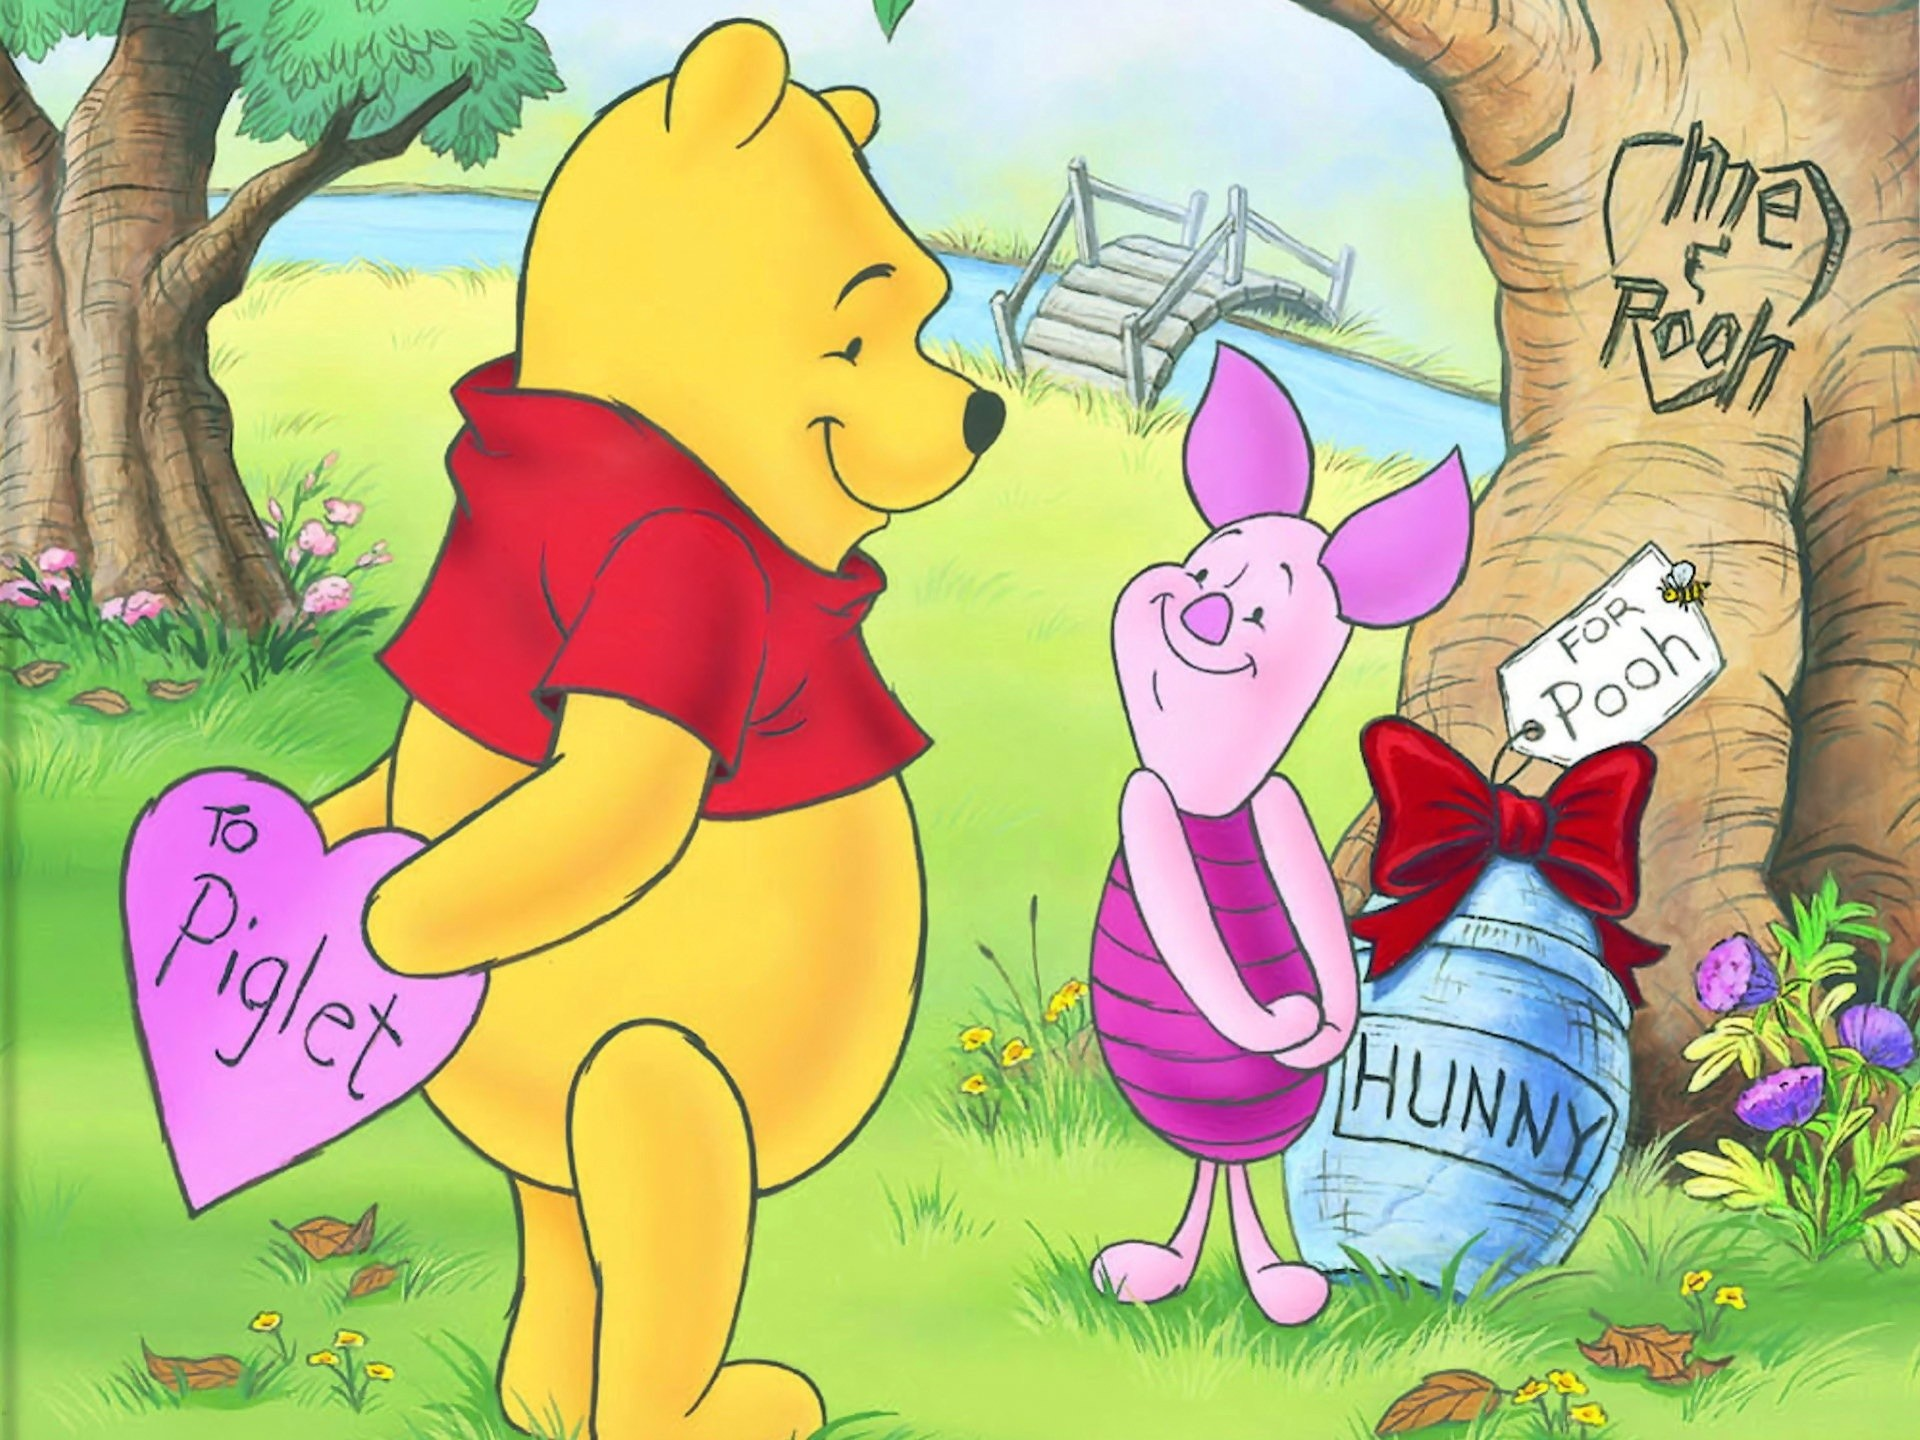 Pooh bear wallpapers 64 images 1920x1080 winnie the pooh beautiful hd wallpapers all hd wallpapers winnie the pooh wallpapers wallpapers download voltagebd Images